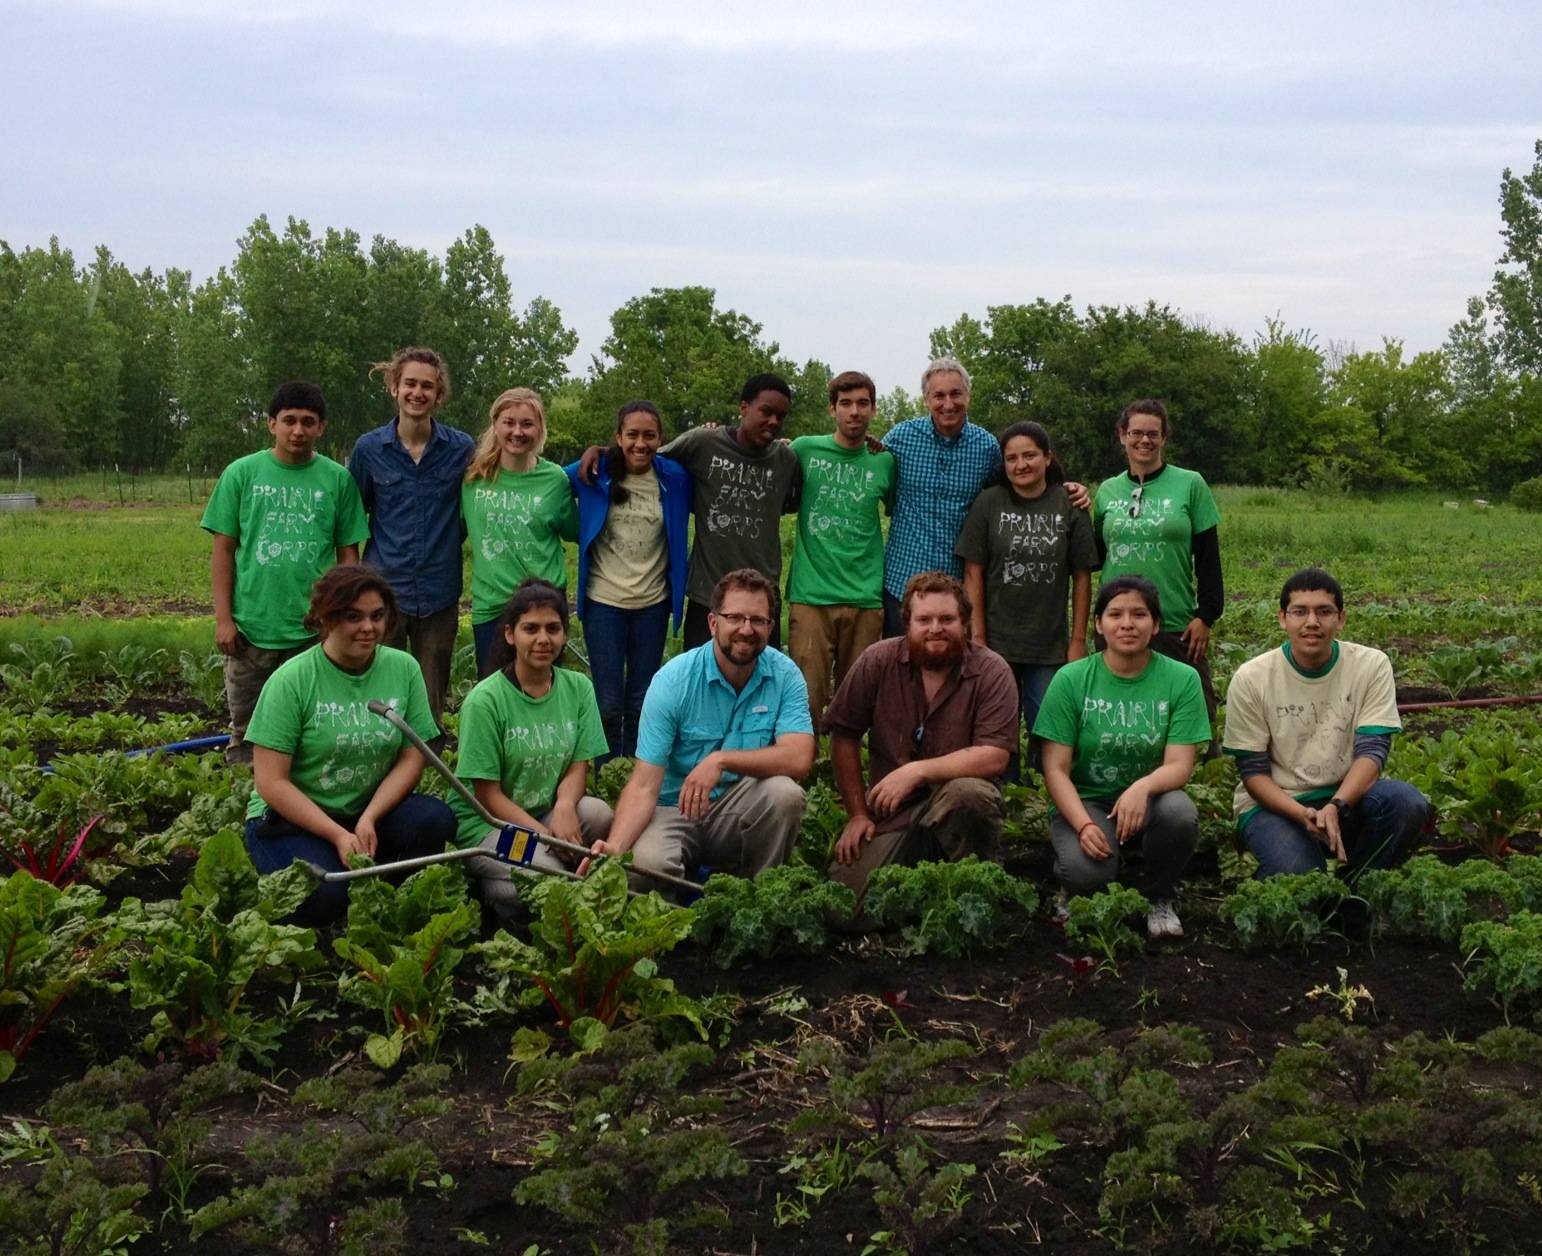 Joe Lamp'l, Growing a Greener World Host and Executive Producer, with participants in the Prairie Farm Corps youth development program at the Prairie Crossing Farm in Grayslake.Erin Cummisford